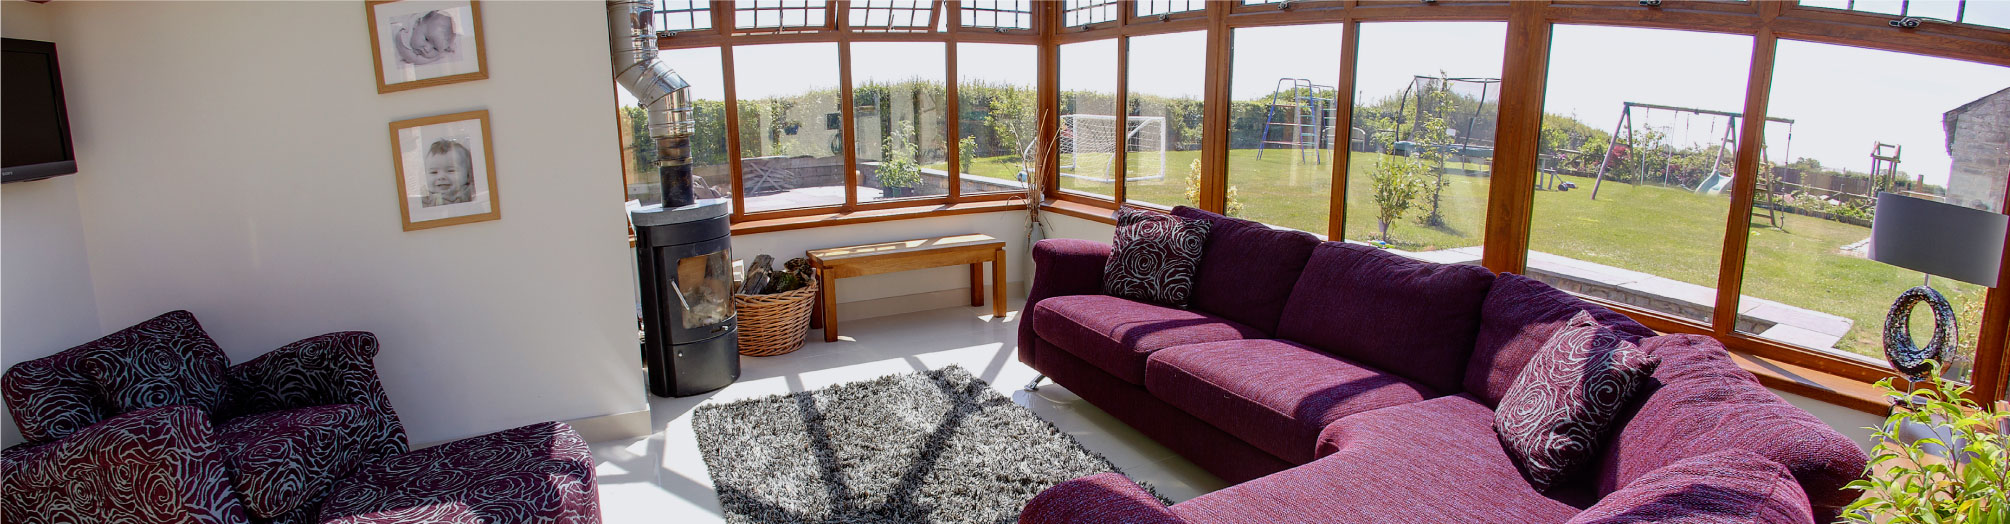 Conservatories header image